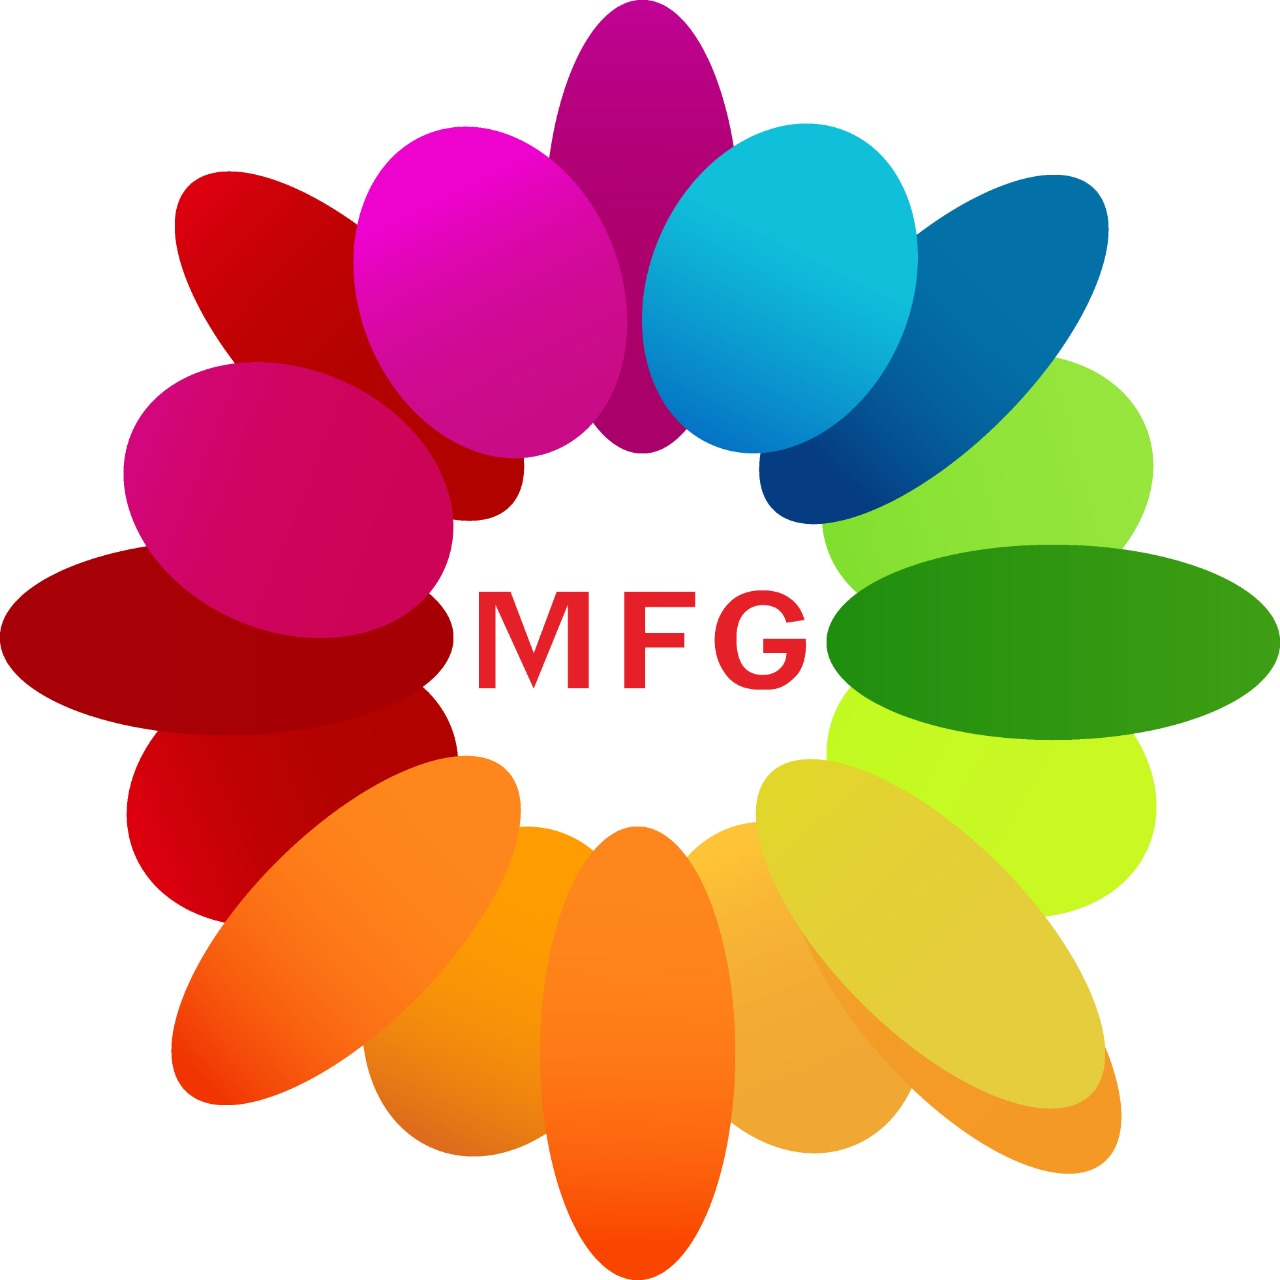 Heart Shape 1 kg Chocolate Truffle Cake Premium Quality